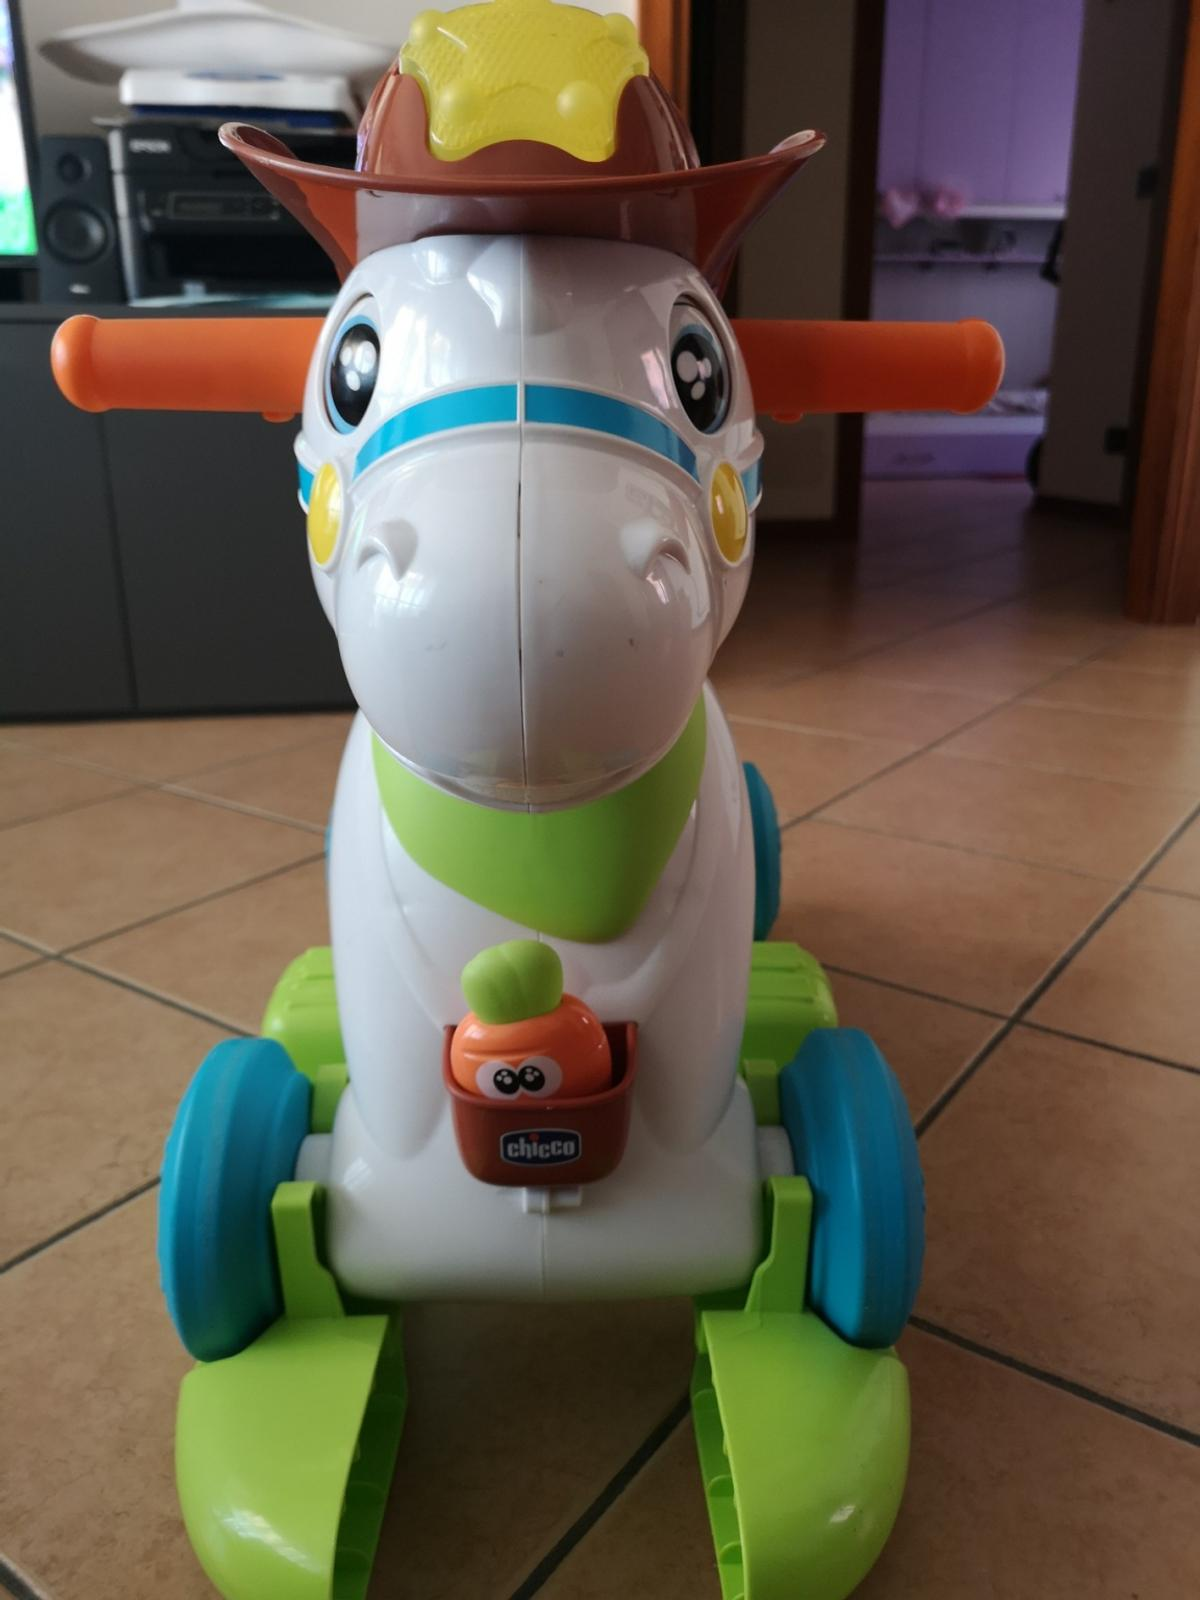 Chicco Rodeo Con Dondolo.Chicco Rodeo 2 In 1 In 42013 Casalgrande For 25 00 For Sale Shpock